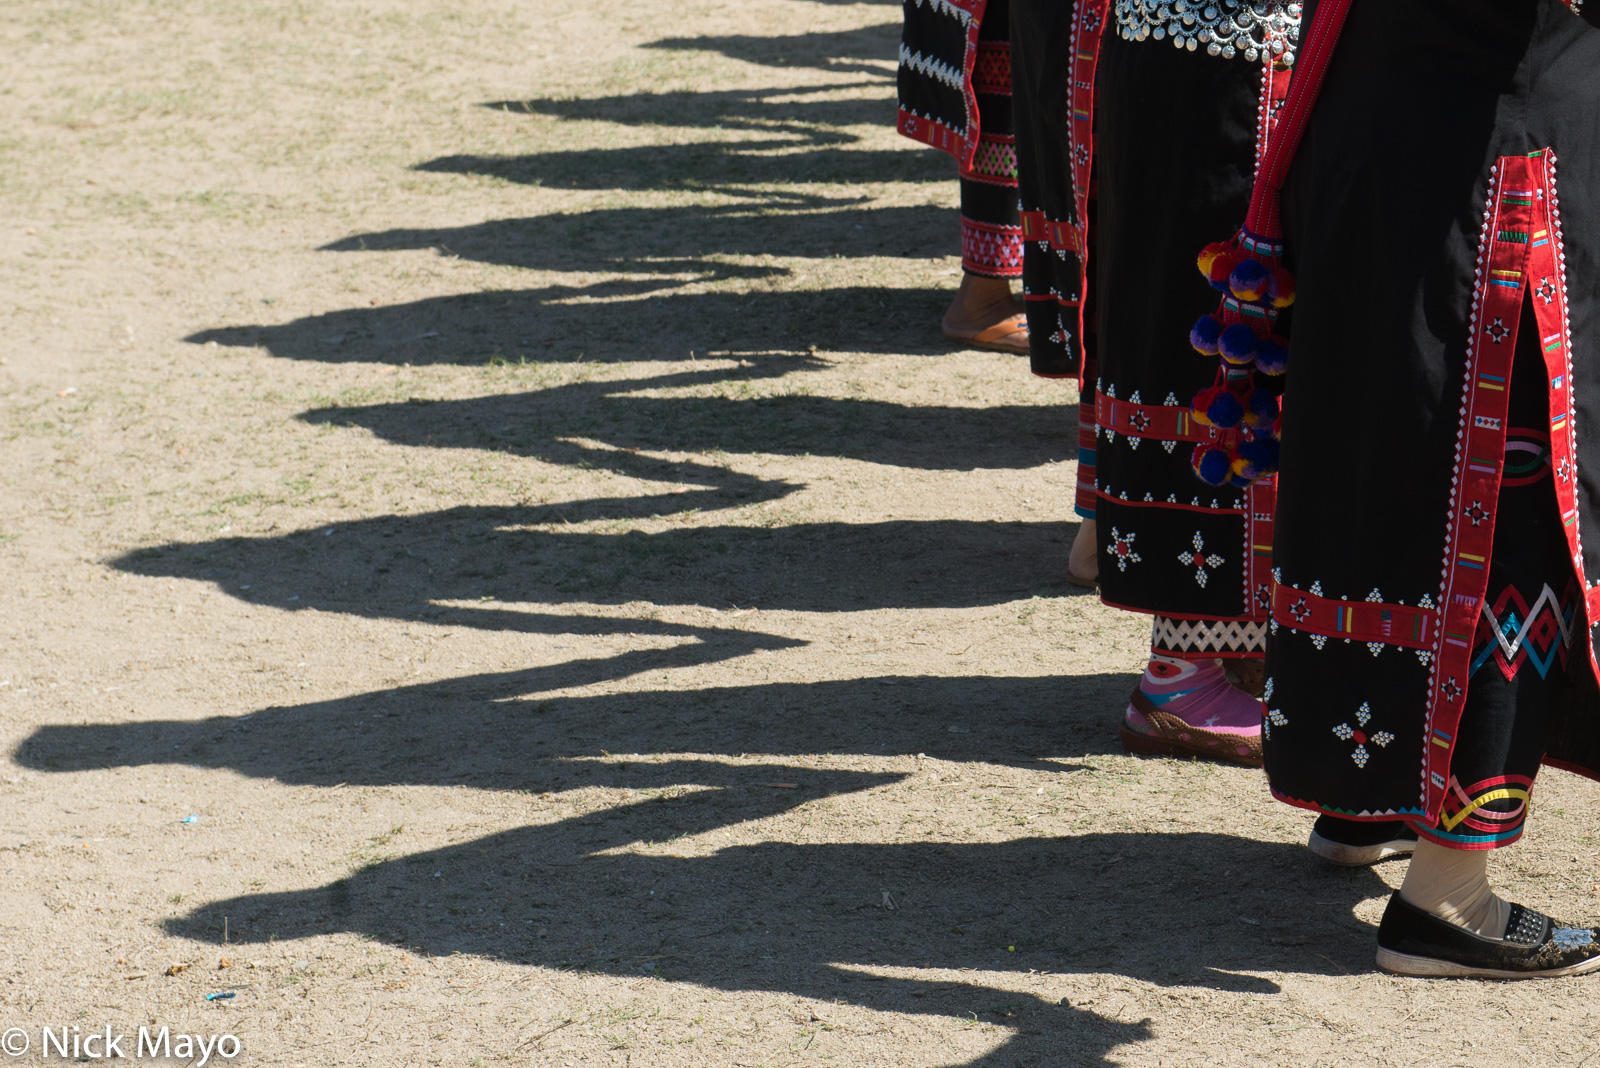 Shadows of dancers at a Lahu New Year festival in Kengtung.